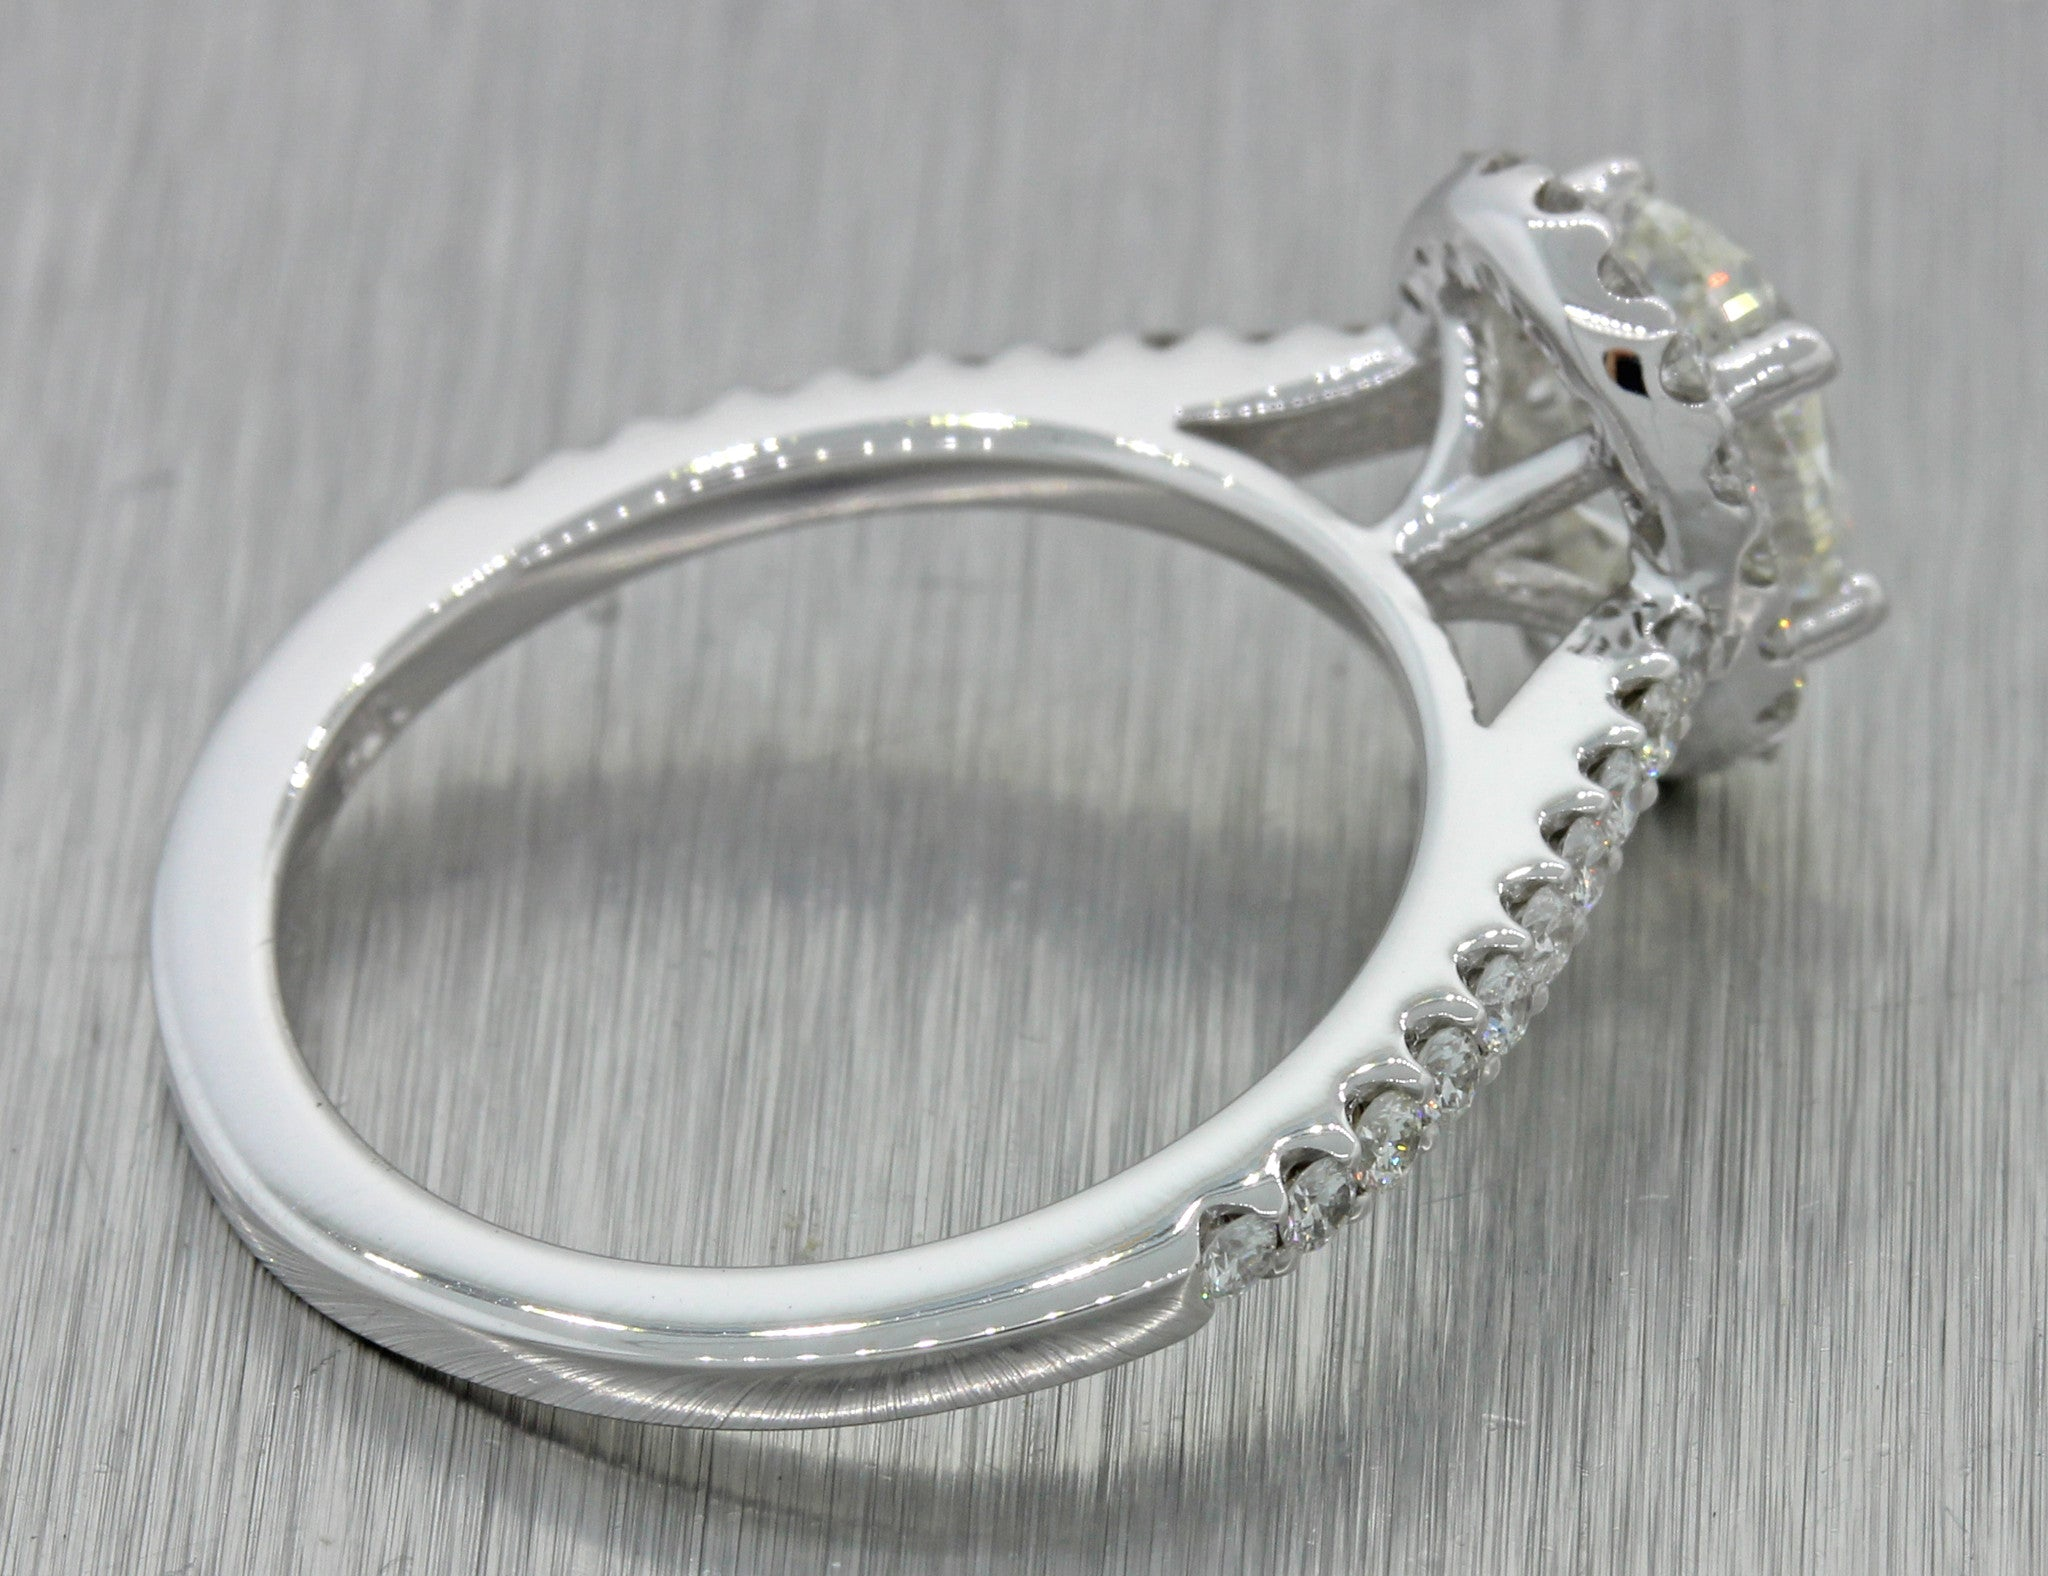 14k Solid White Gold 1.41ctw Oval Diamond Halo Engagement Ring EGL International